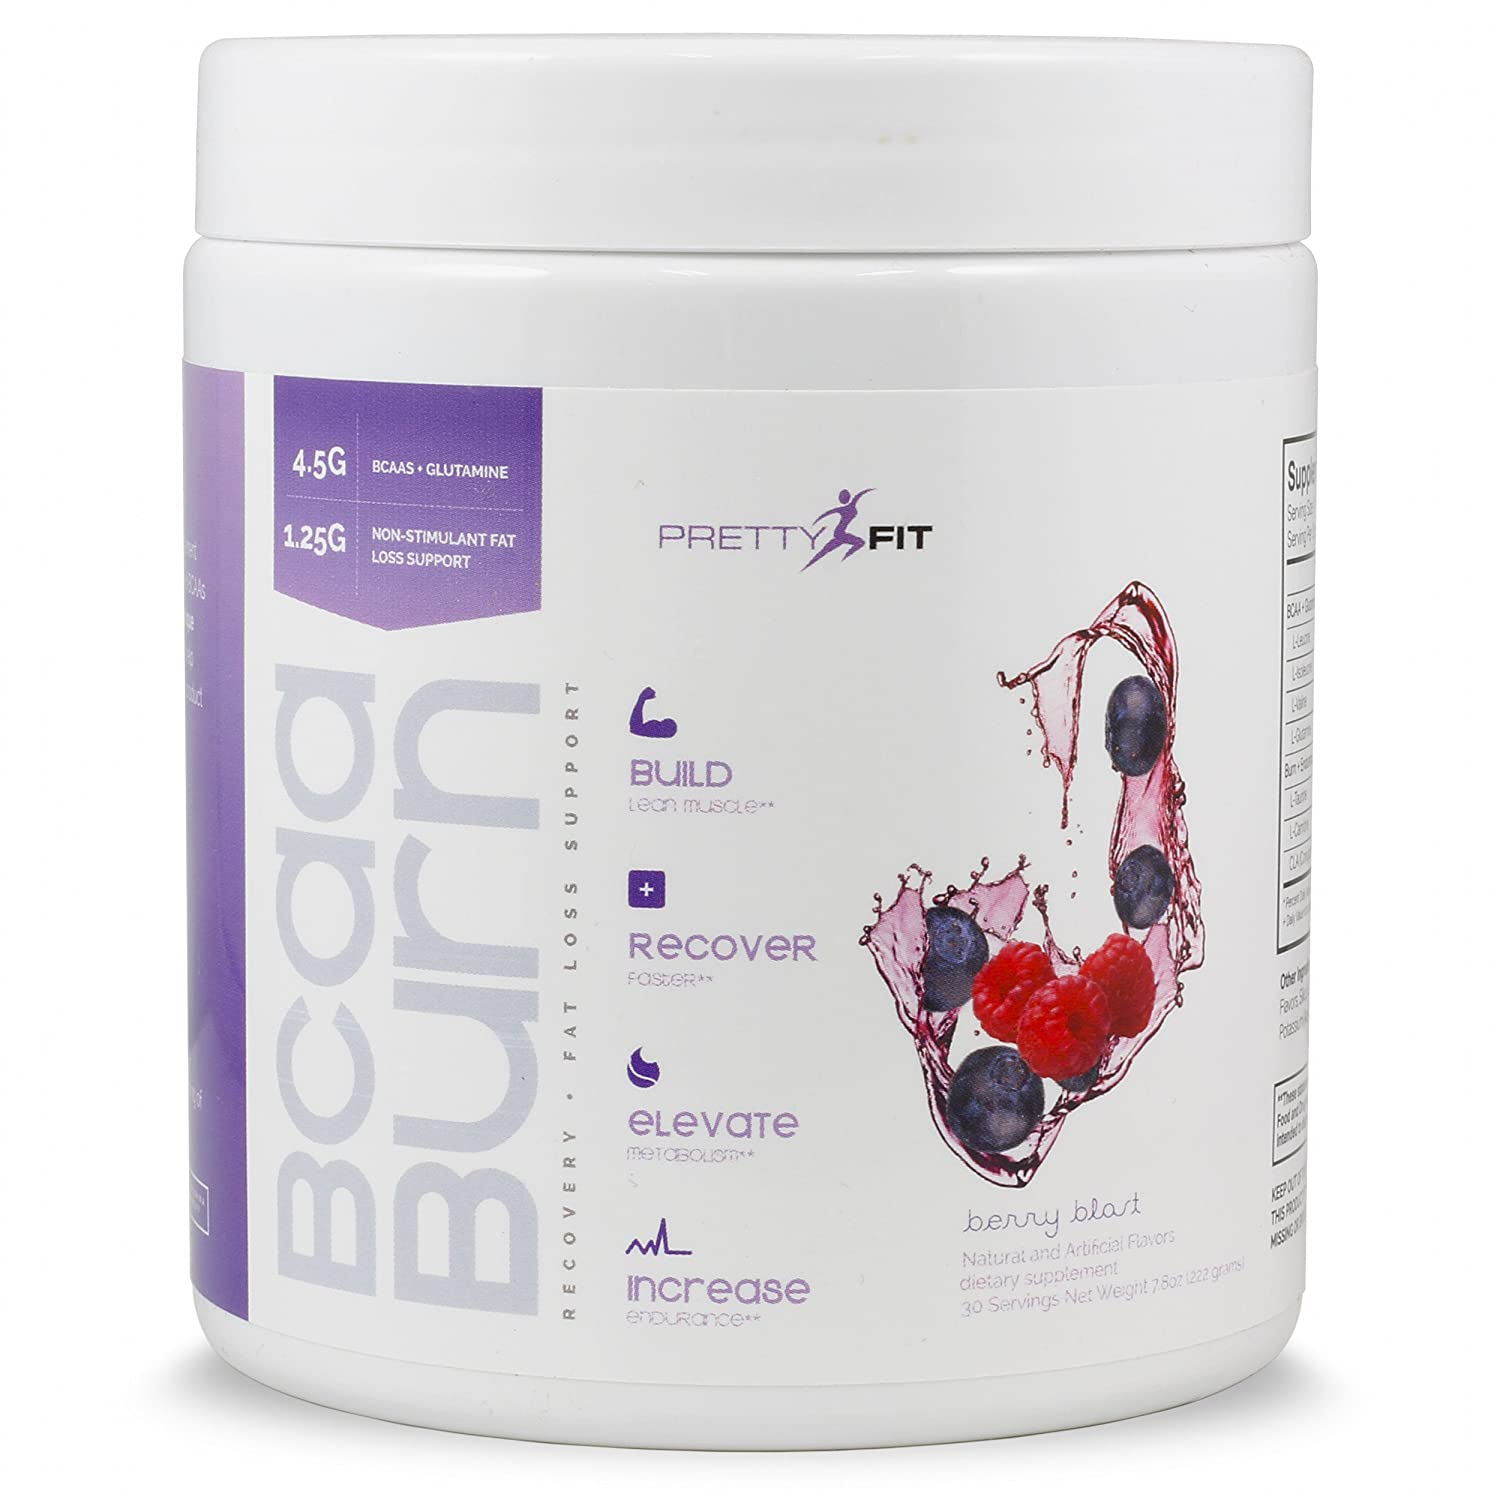 PrettyFit BCAA Burn – 30 Servings – Berry Blast – BCAAs for Women – Build Lean Muscle with BCAAs, Glutamine, and Non-Stimulant Fat Burners – 0 Calories, 0 Sugars, 0 Carbs